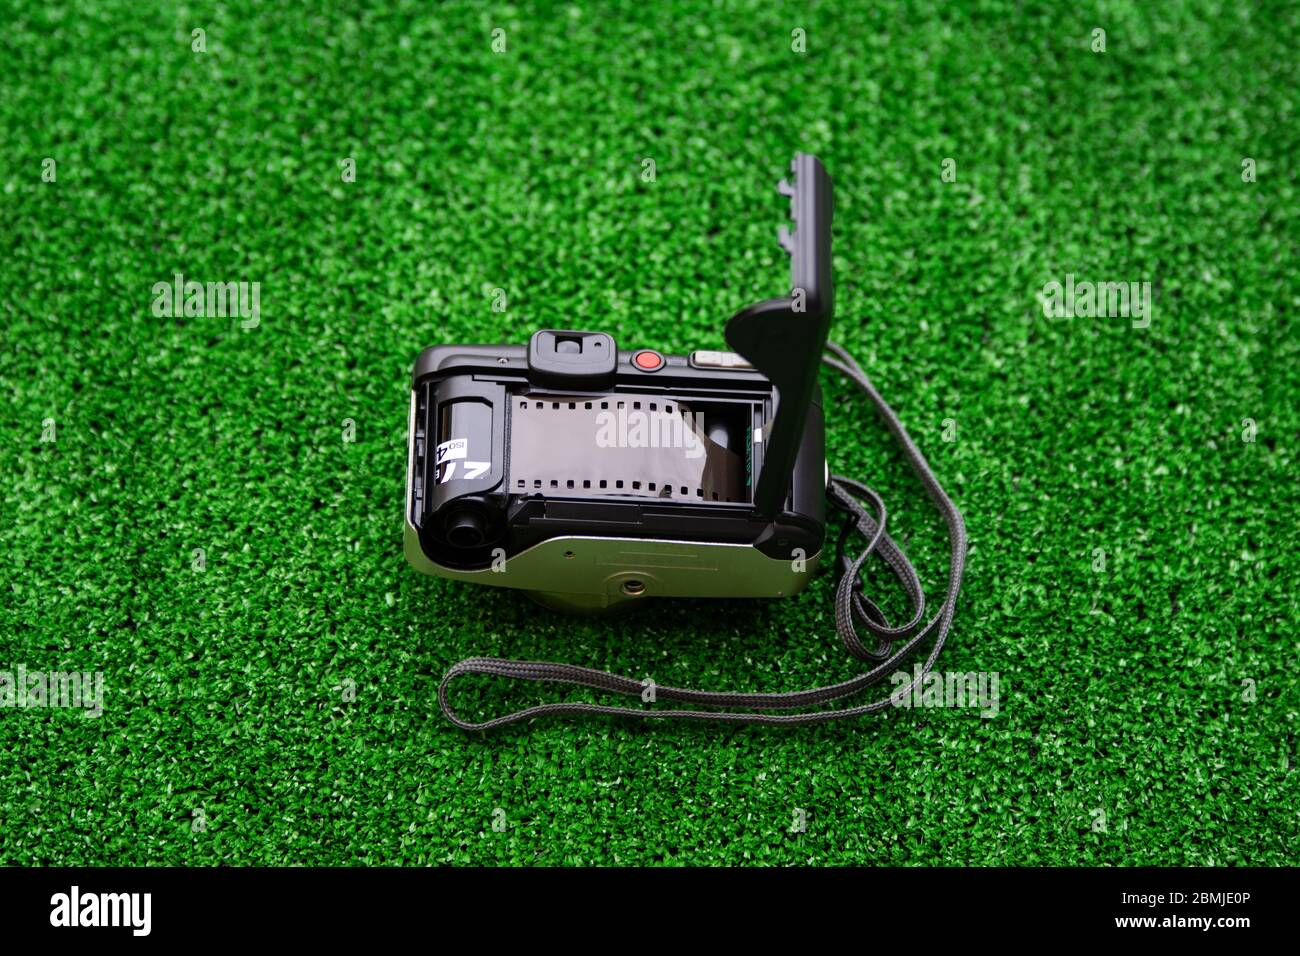 Old analog camera back door and photo film on grass background. Analog photography. Stock Photo